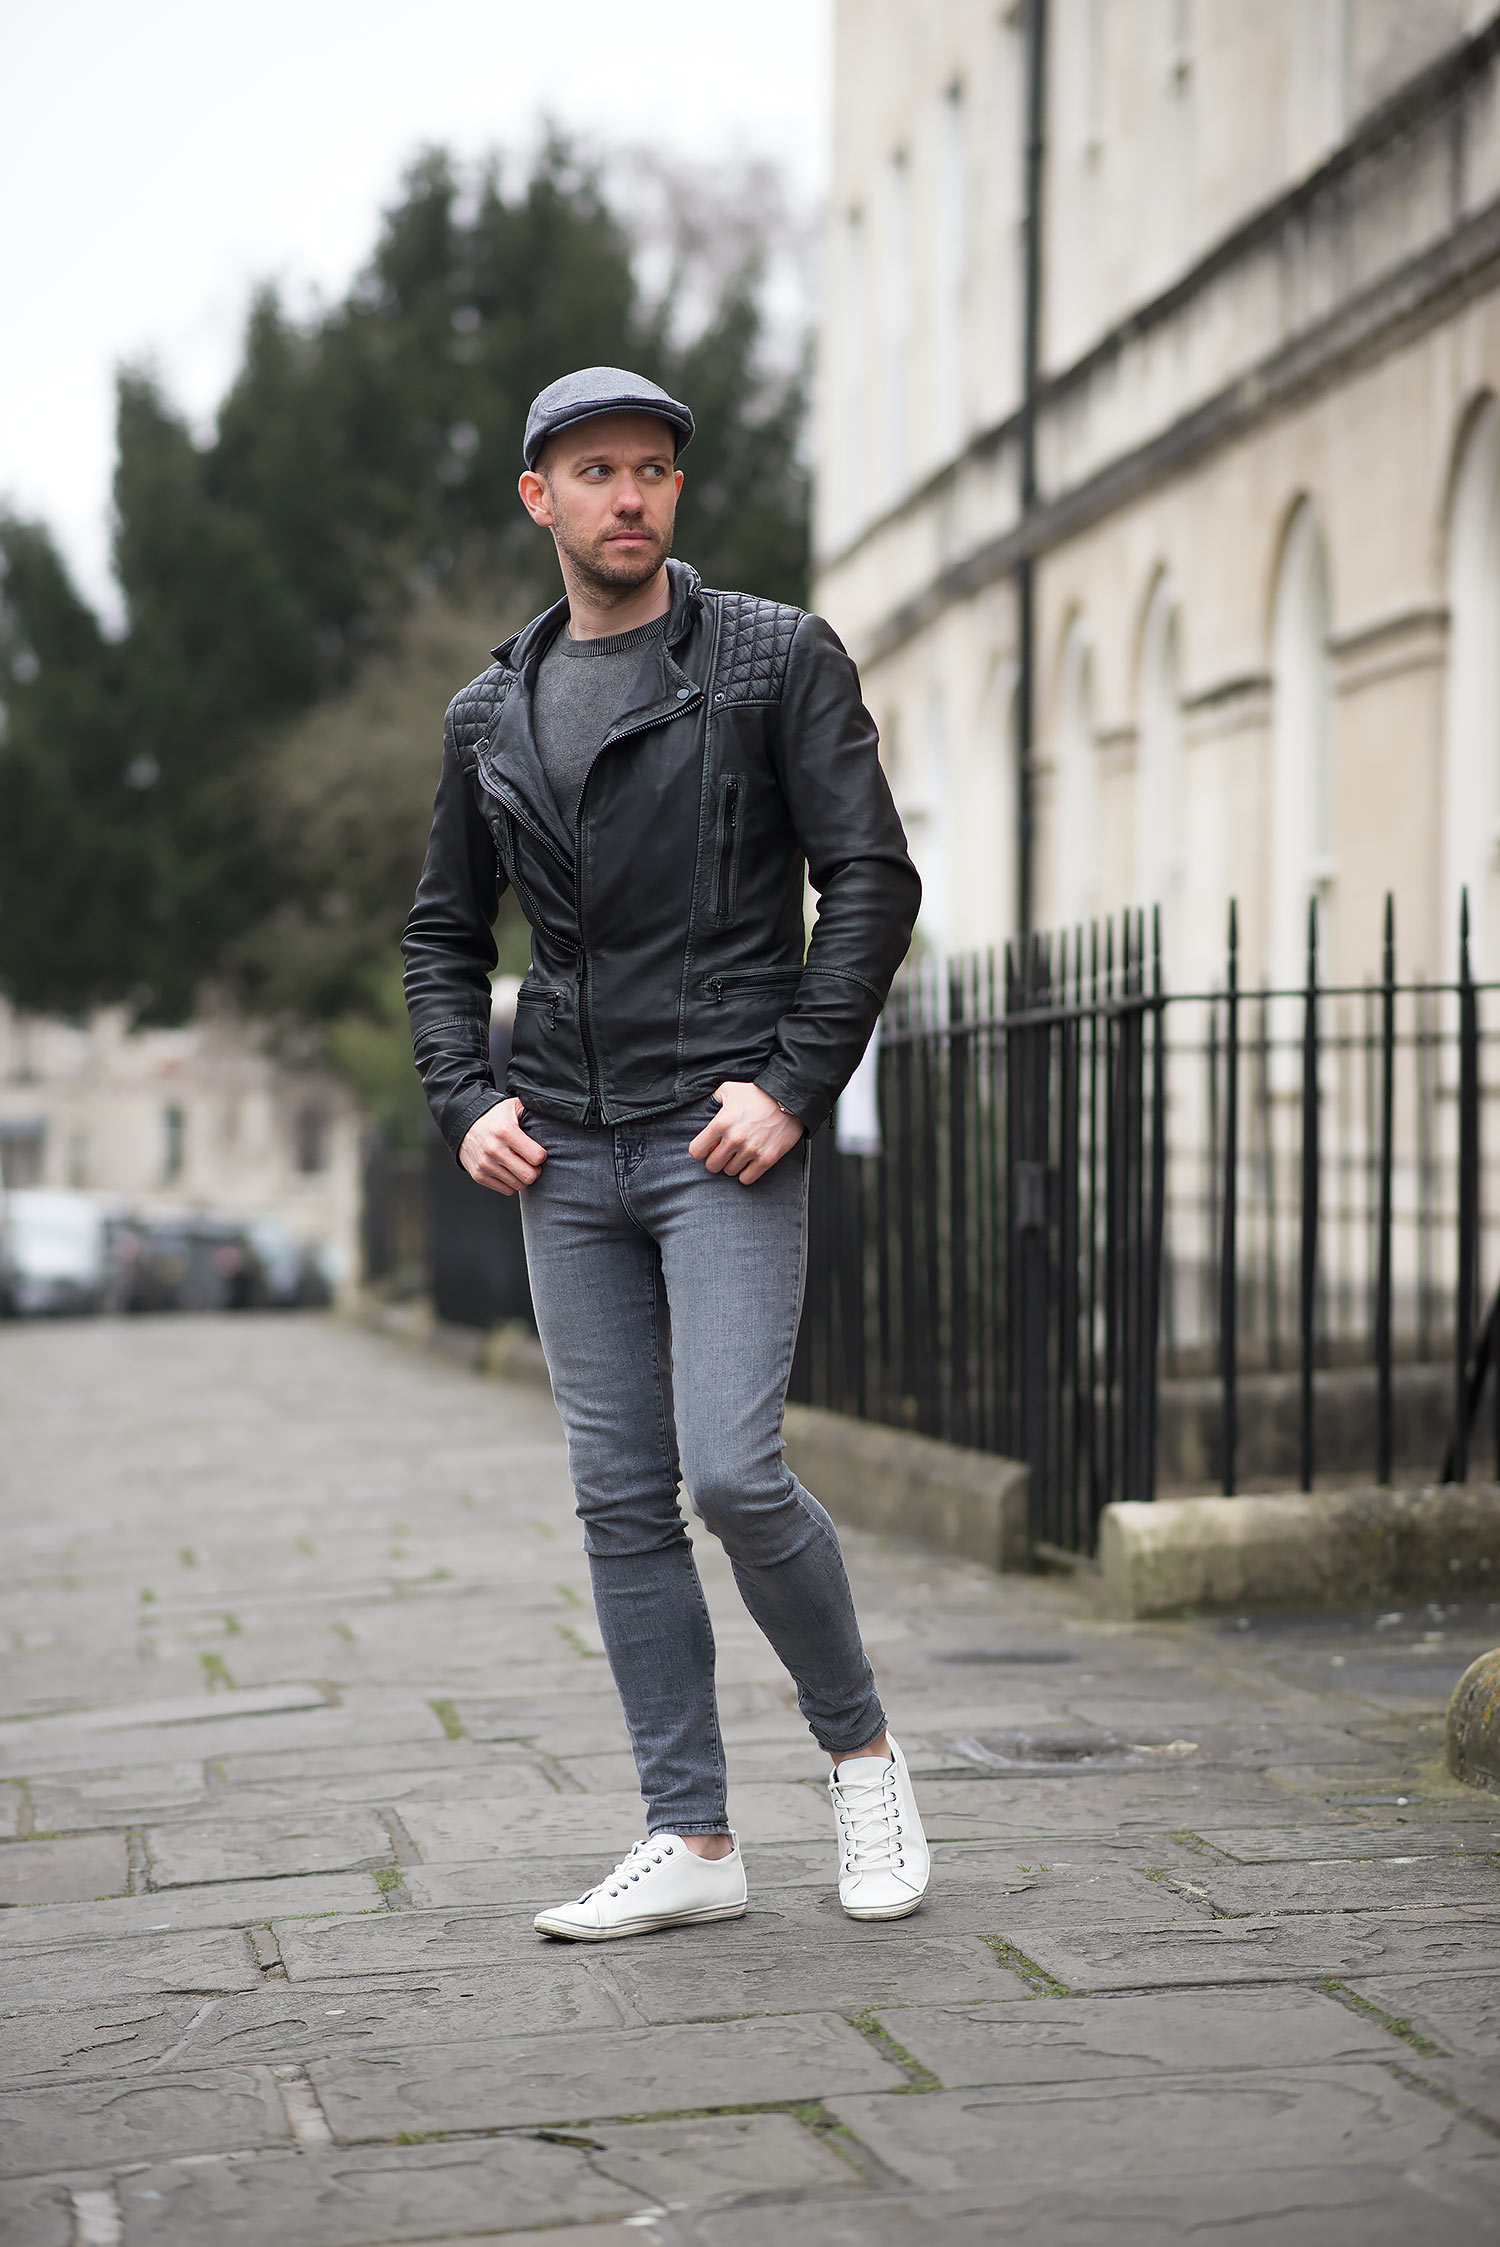 Allsaints Cargo Biker Leather Jacket And Flat Cap Outfit Your